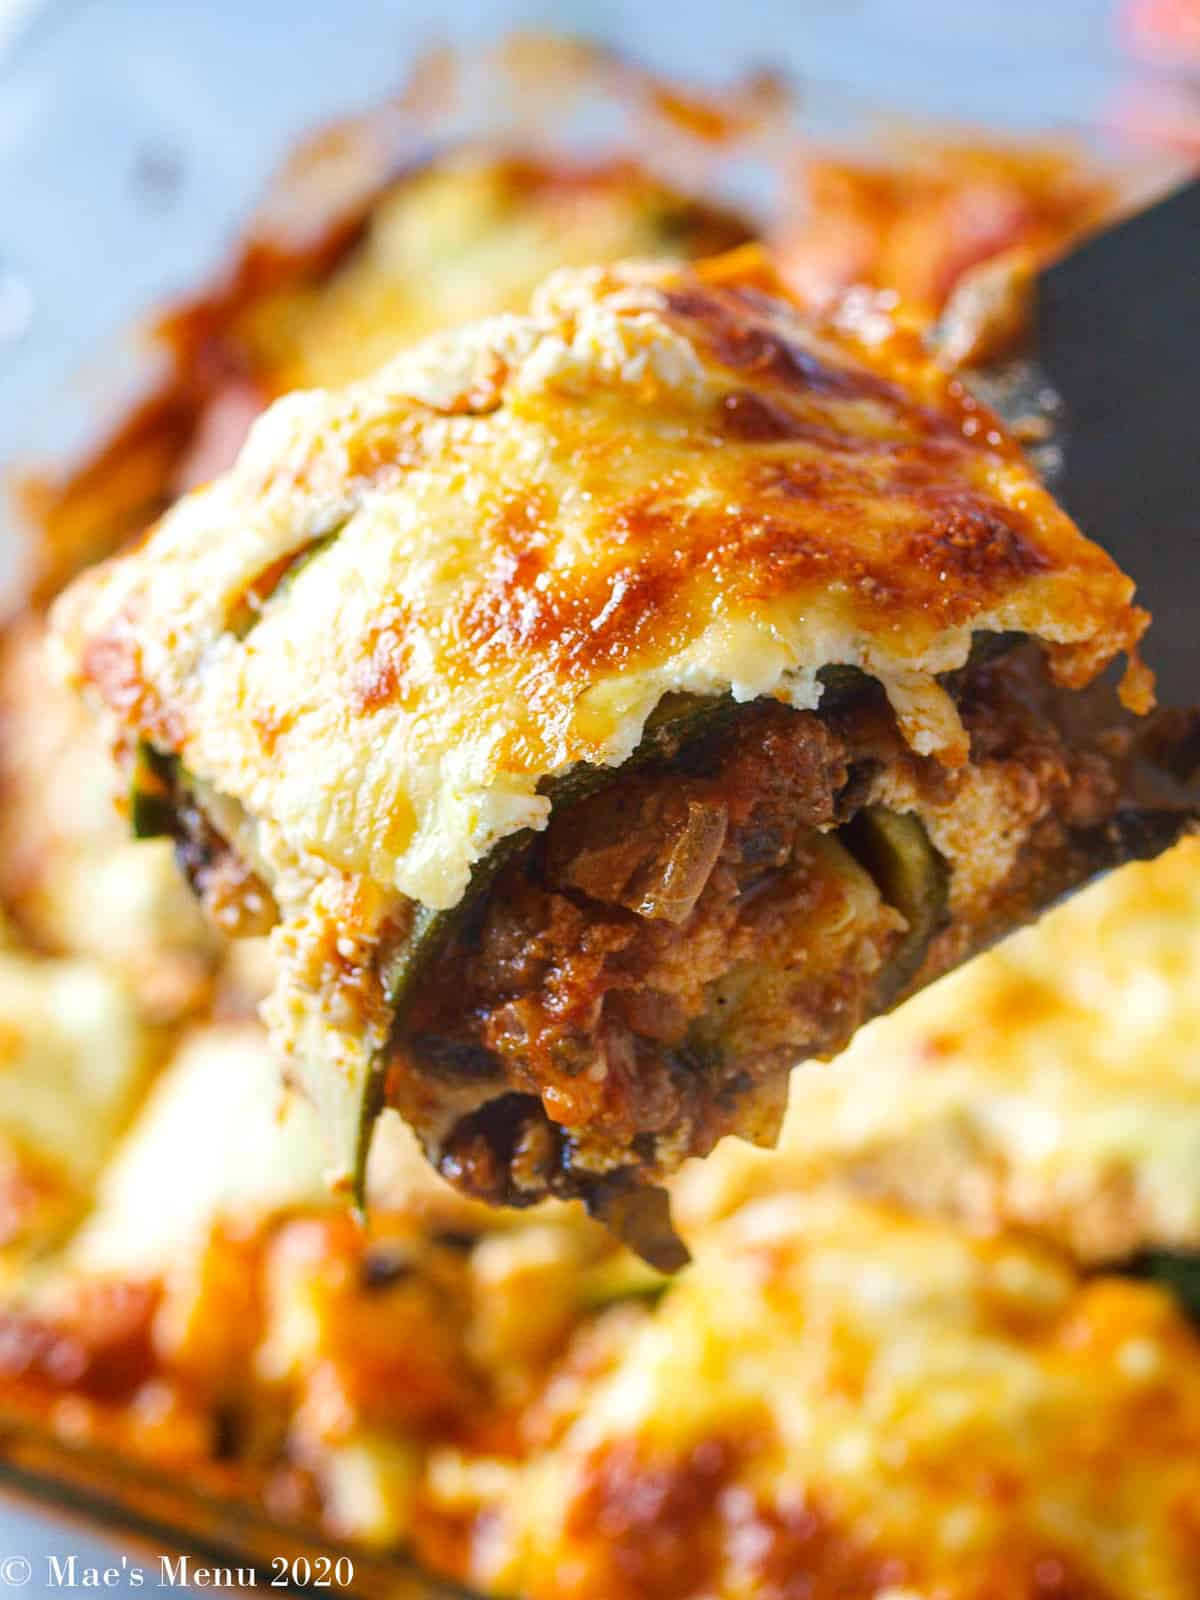 A large scoop of zucchini lasagna over a tray of lasagna